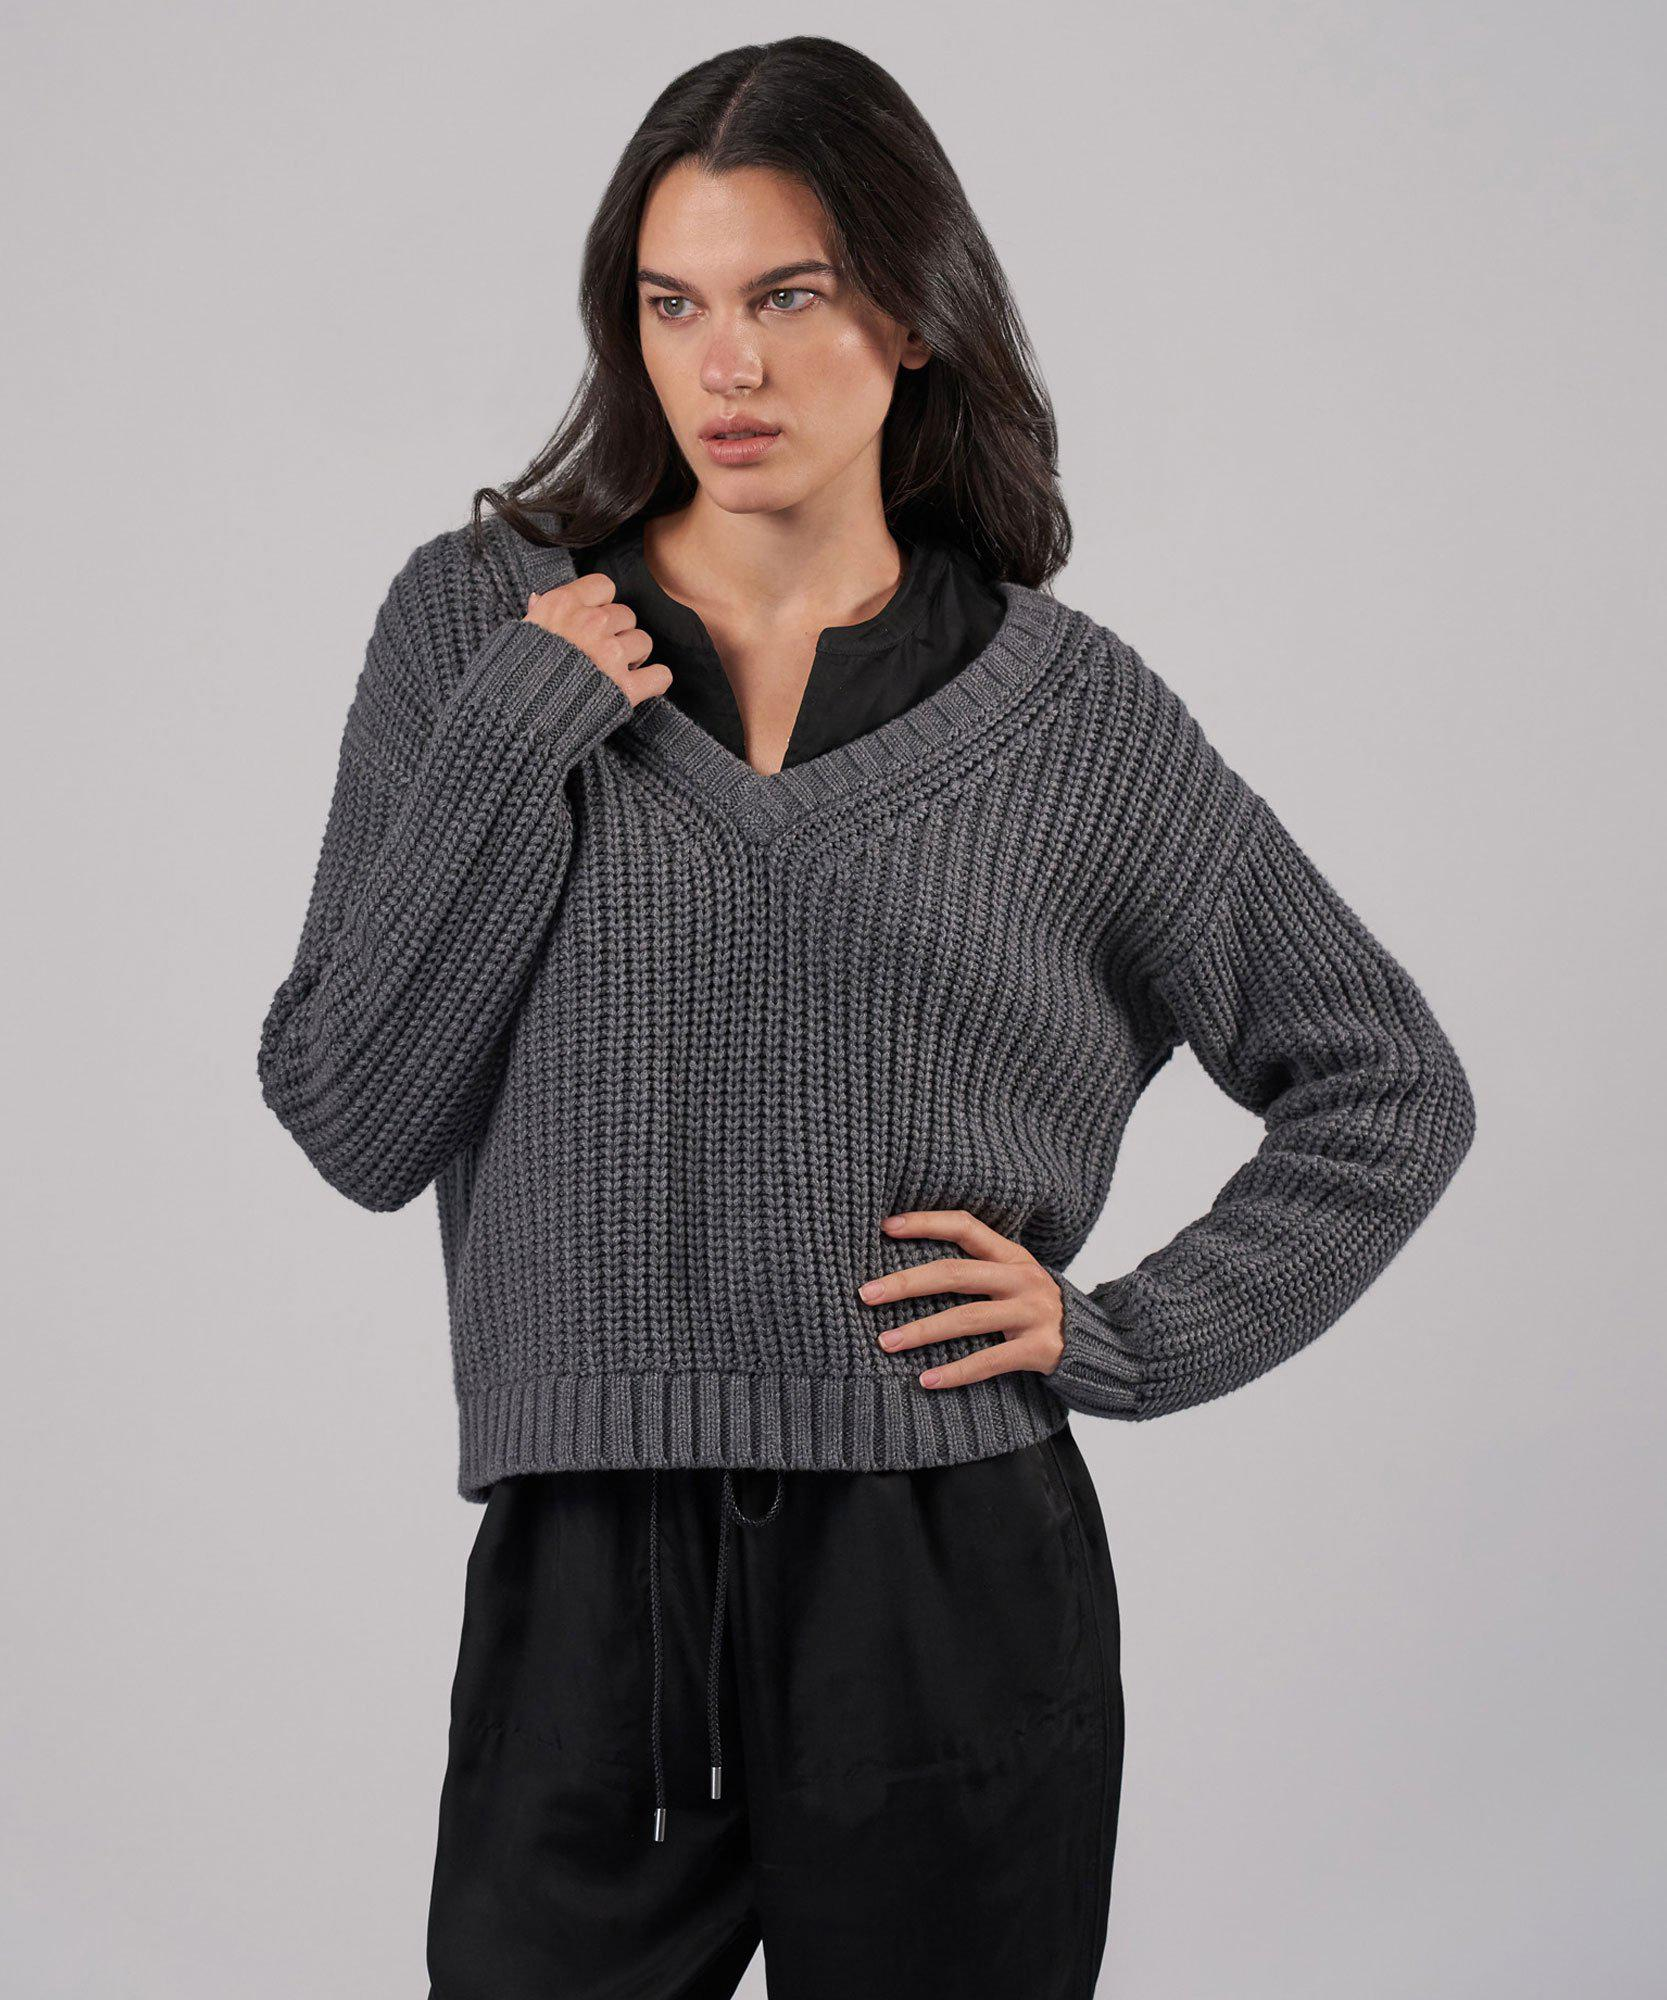 Cotton Cashmere Chunky V-Neck Pullover - Heather Charcoal